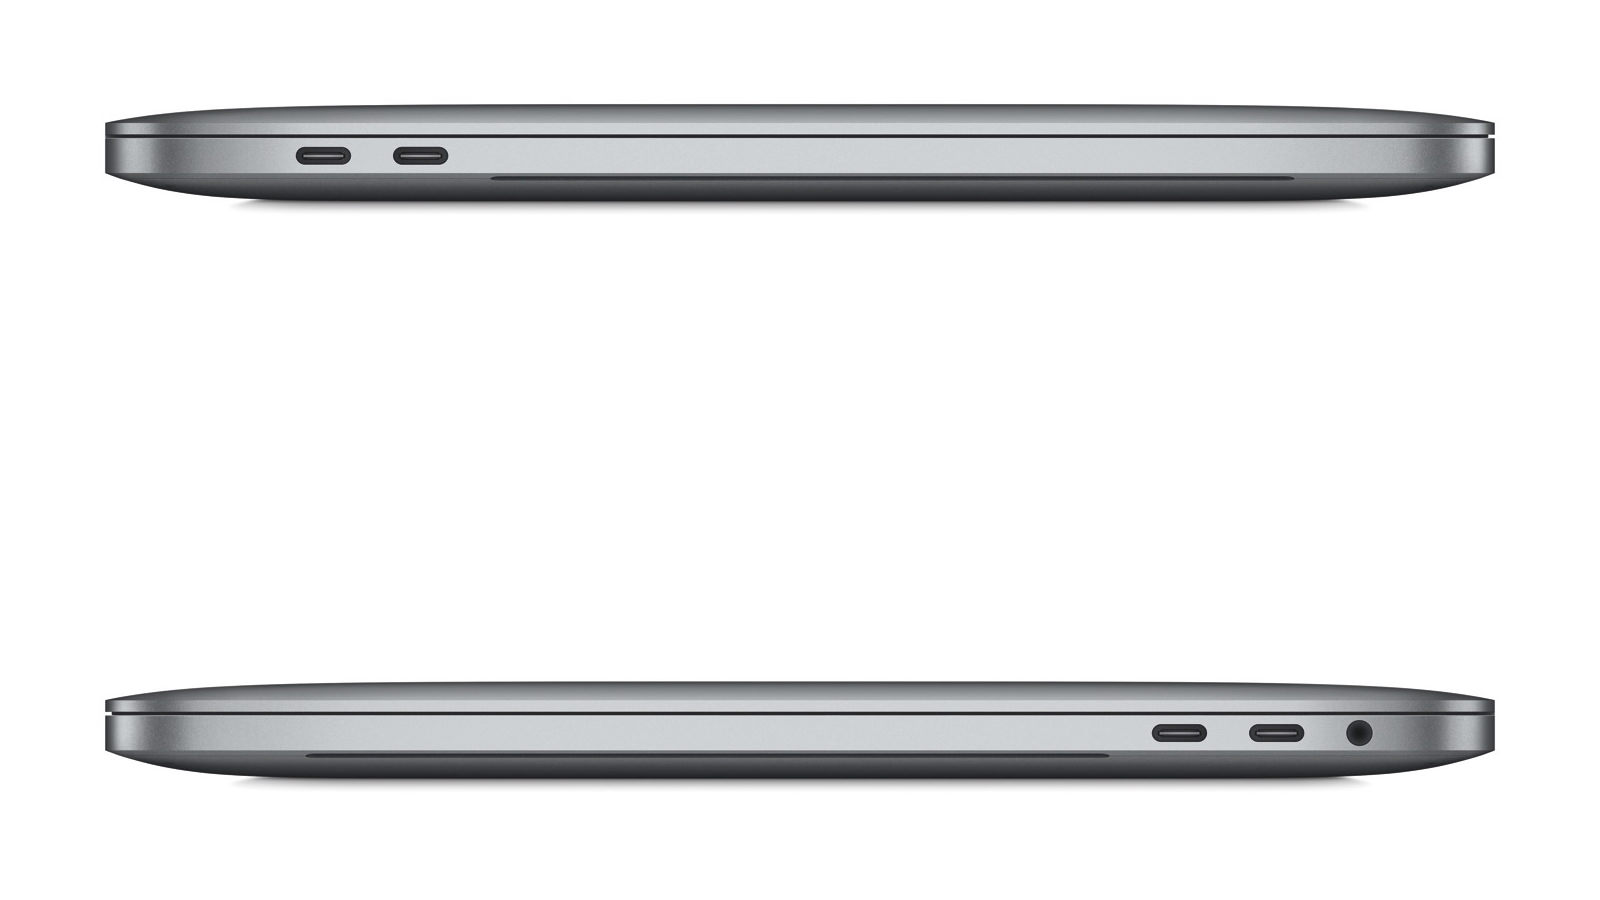 MacBook Pro 13inch model Thunderbolt ports